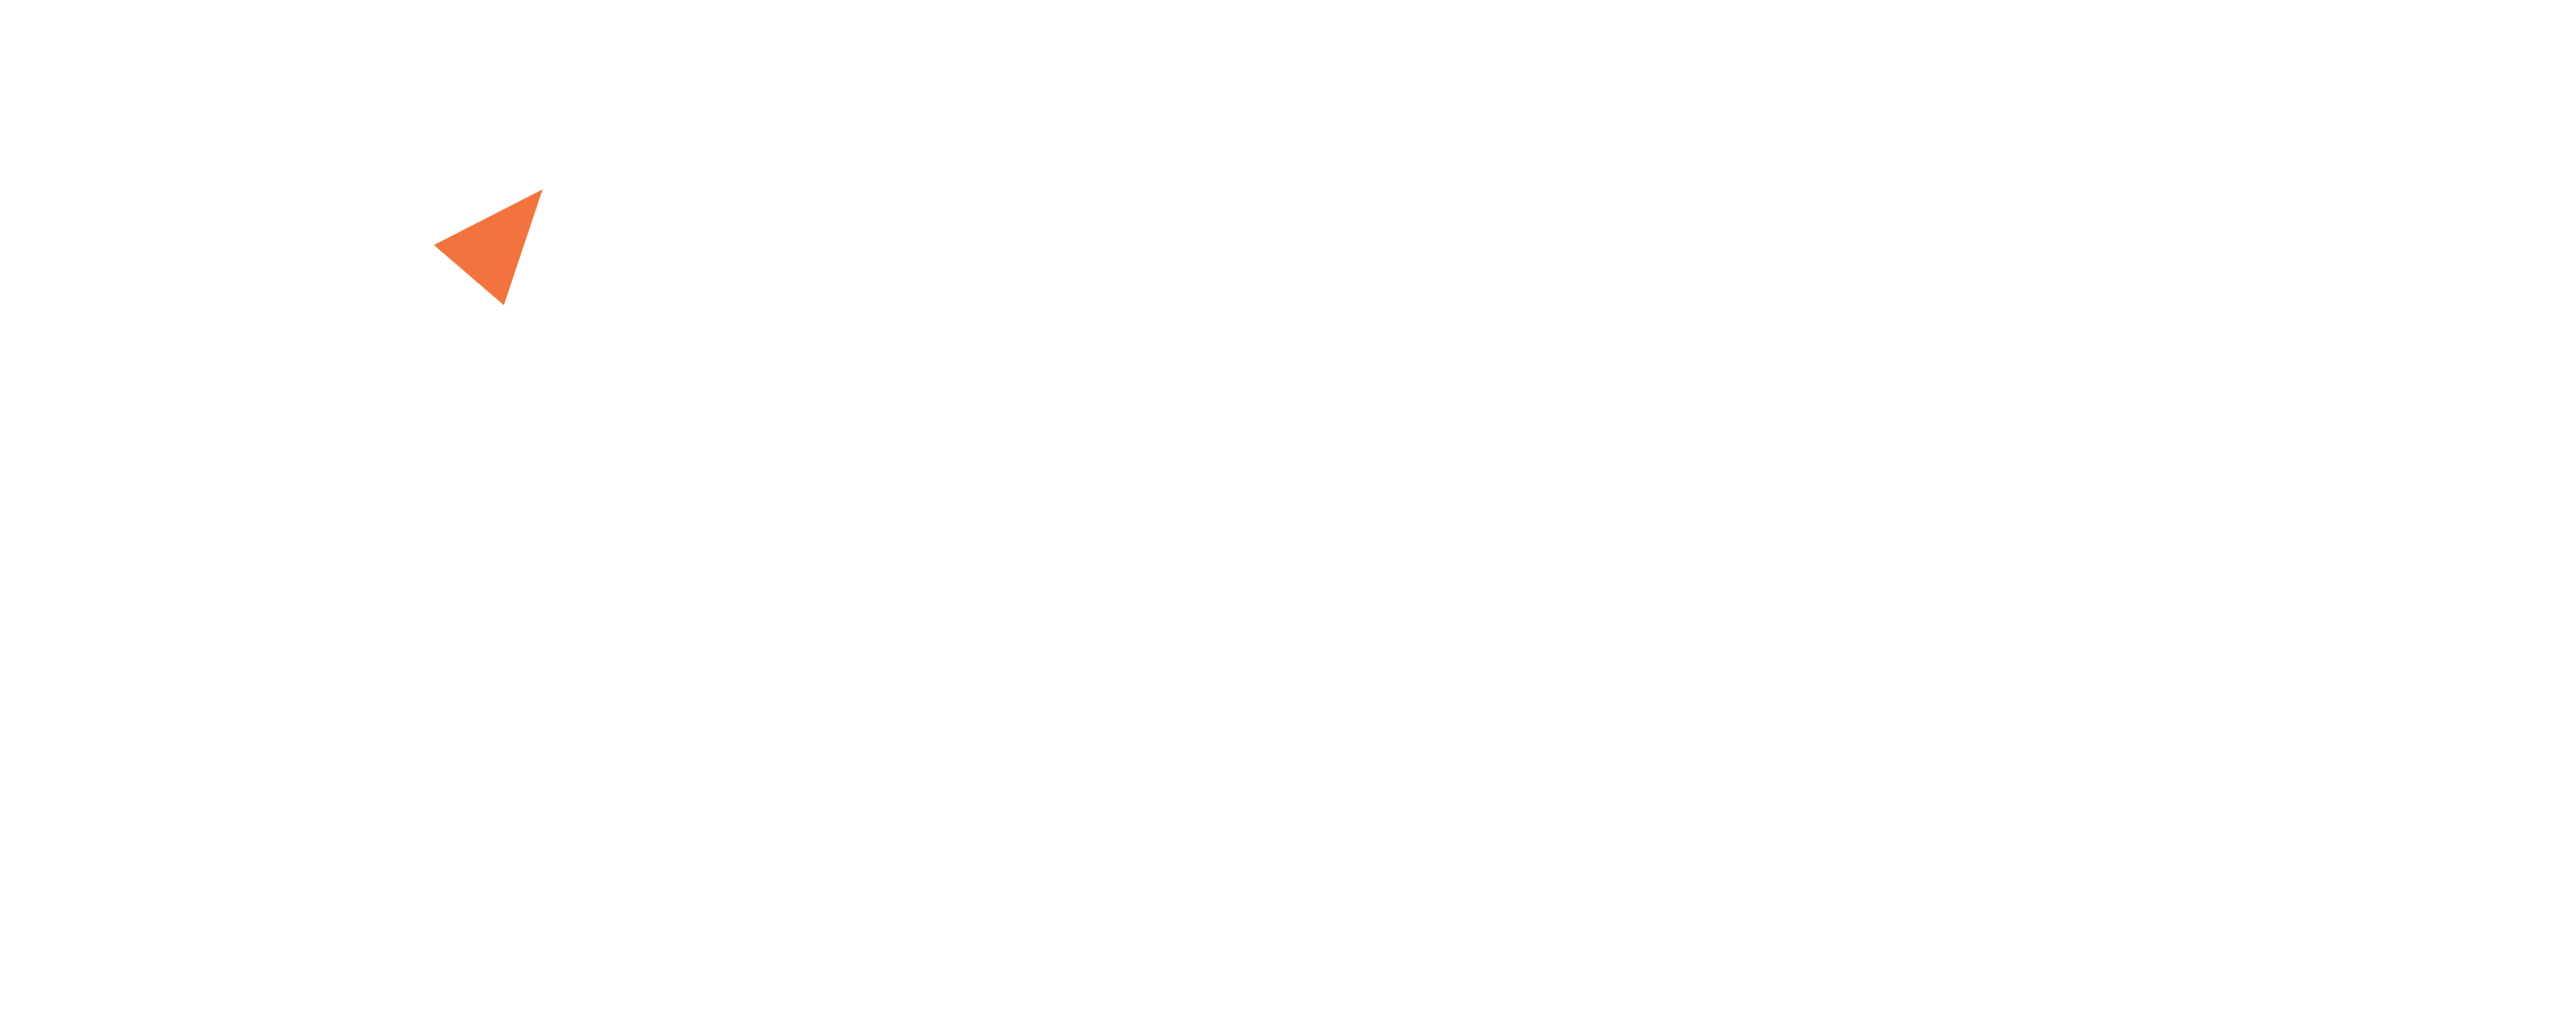 A white version of the Idea Link logo and name